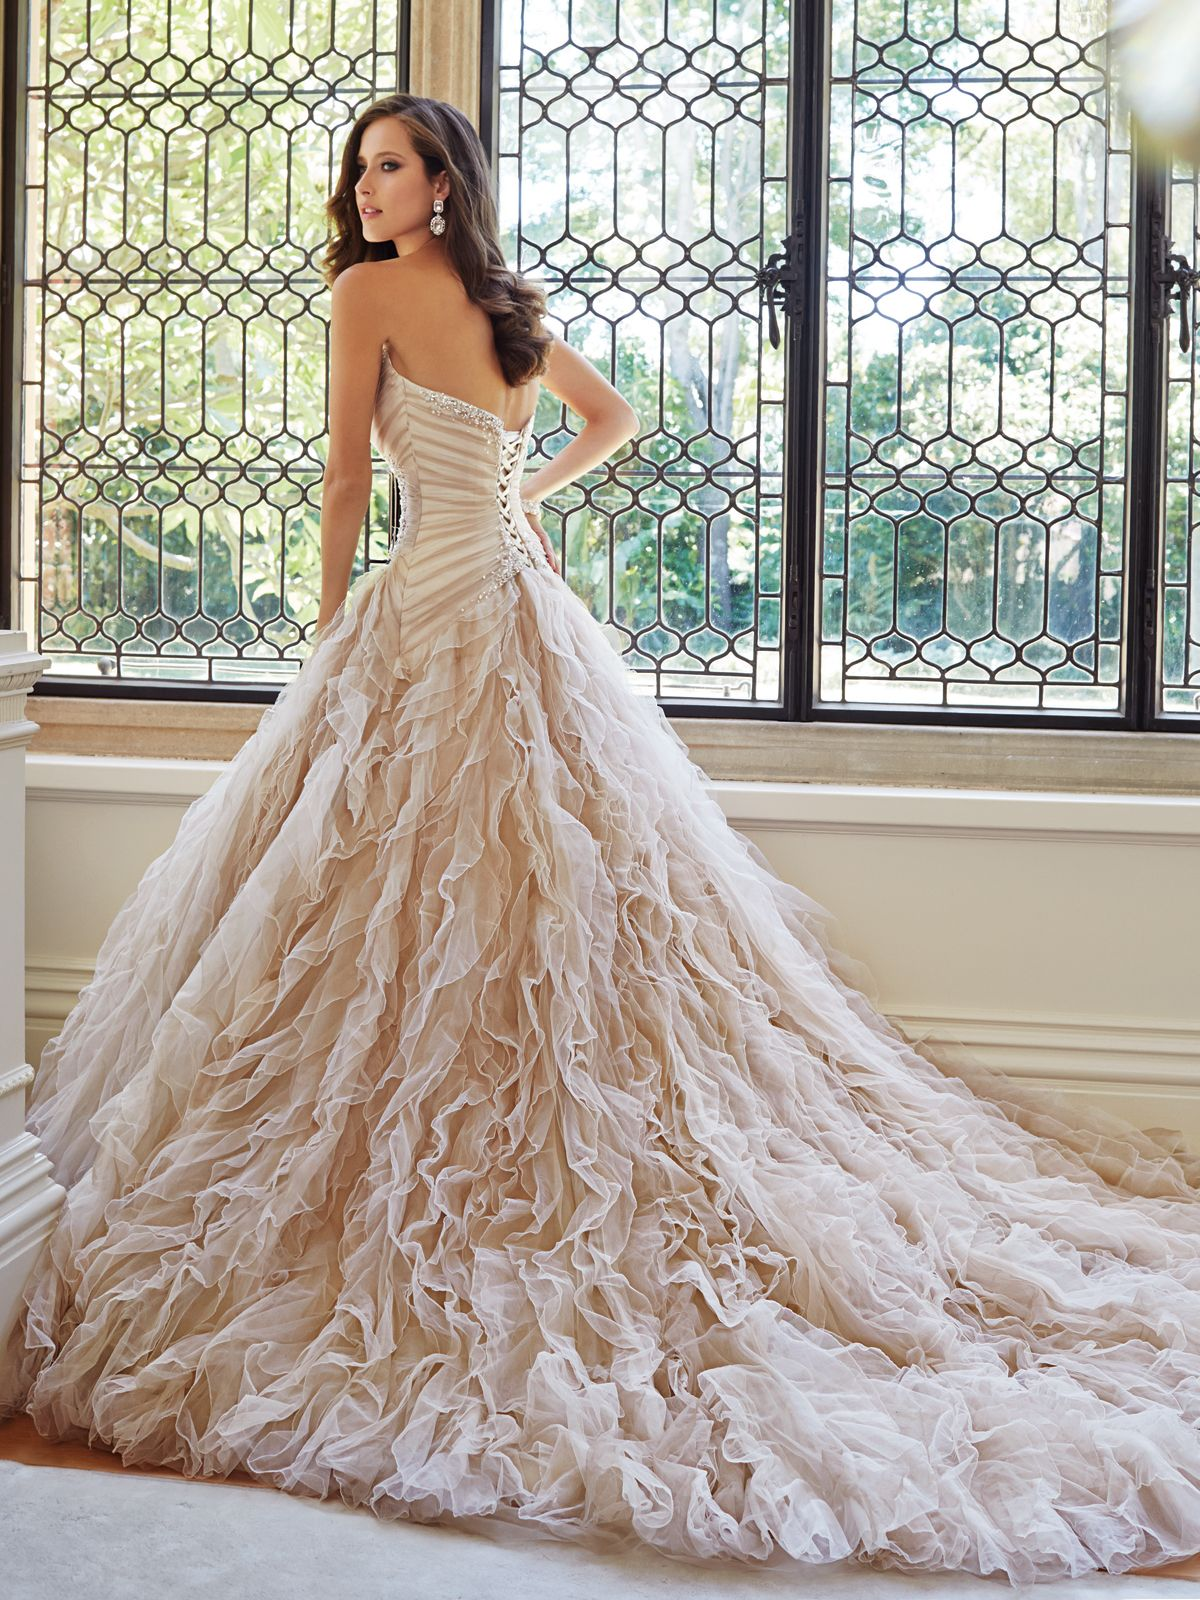 Sophia tolli wedding dresses 2014 collection wedding skirts and sophia tolli wedding dresses 2014 collection ombrellifo Choice Image